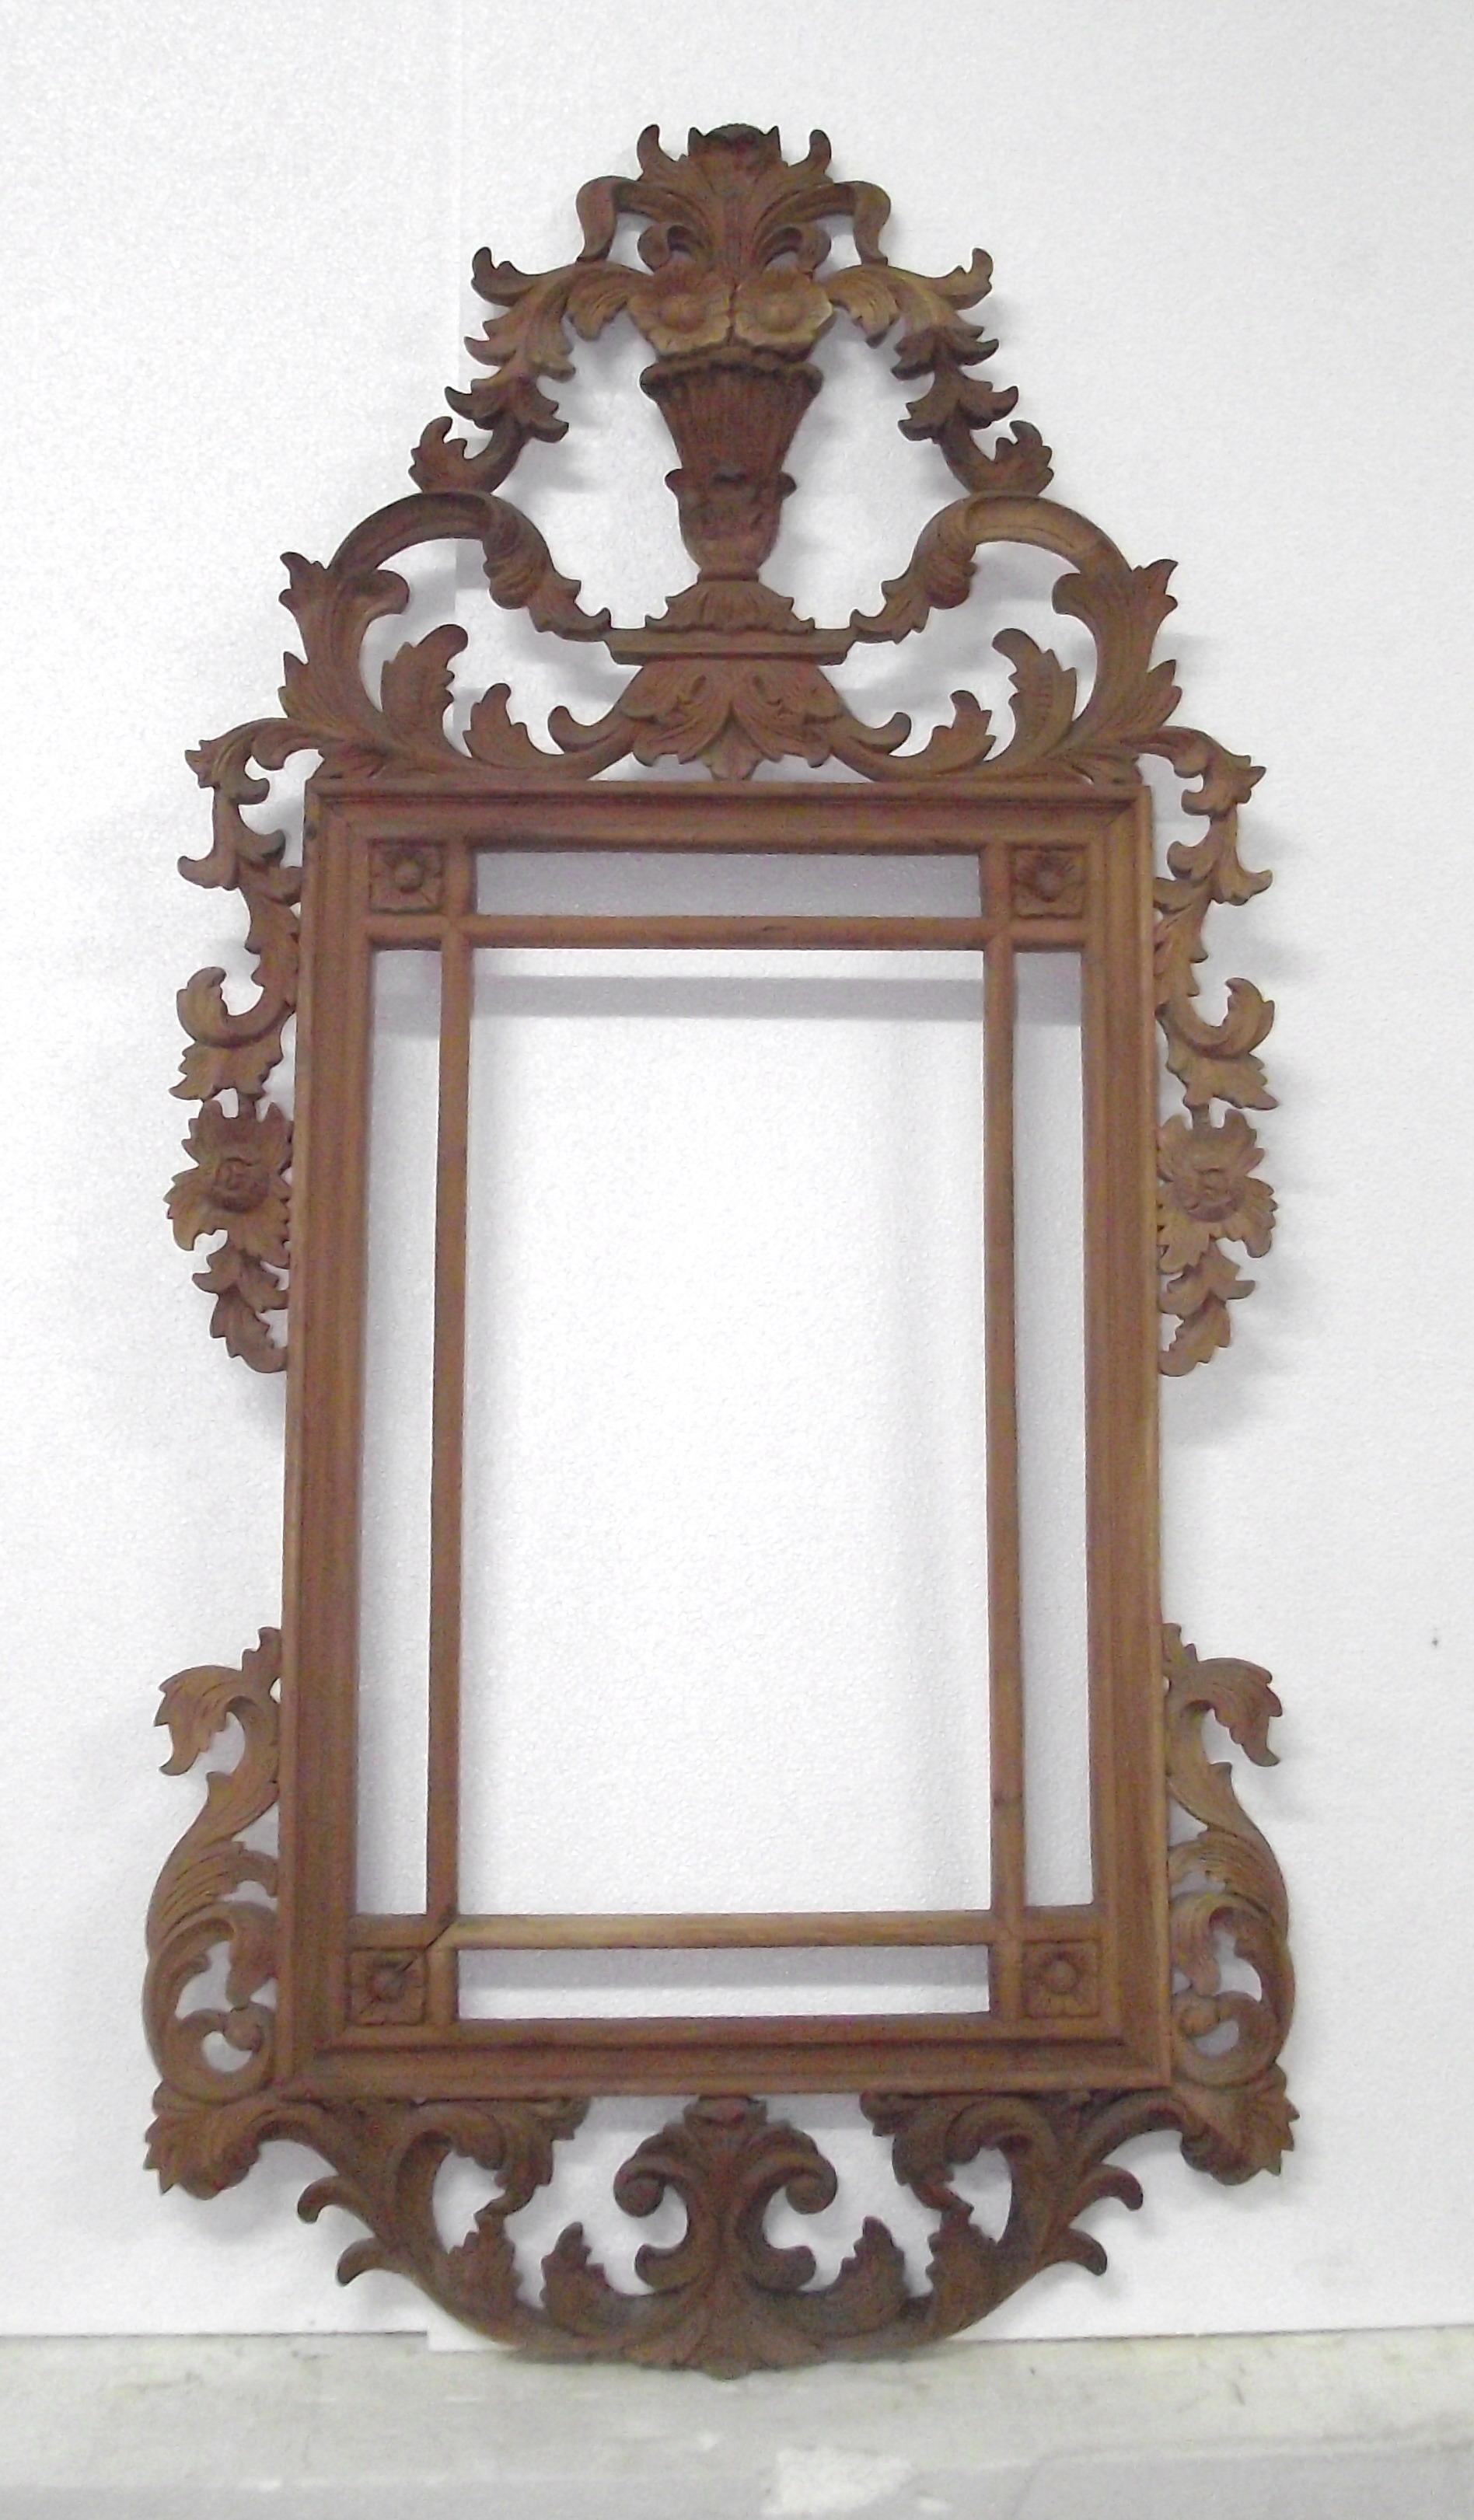 Frame with flowers